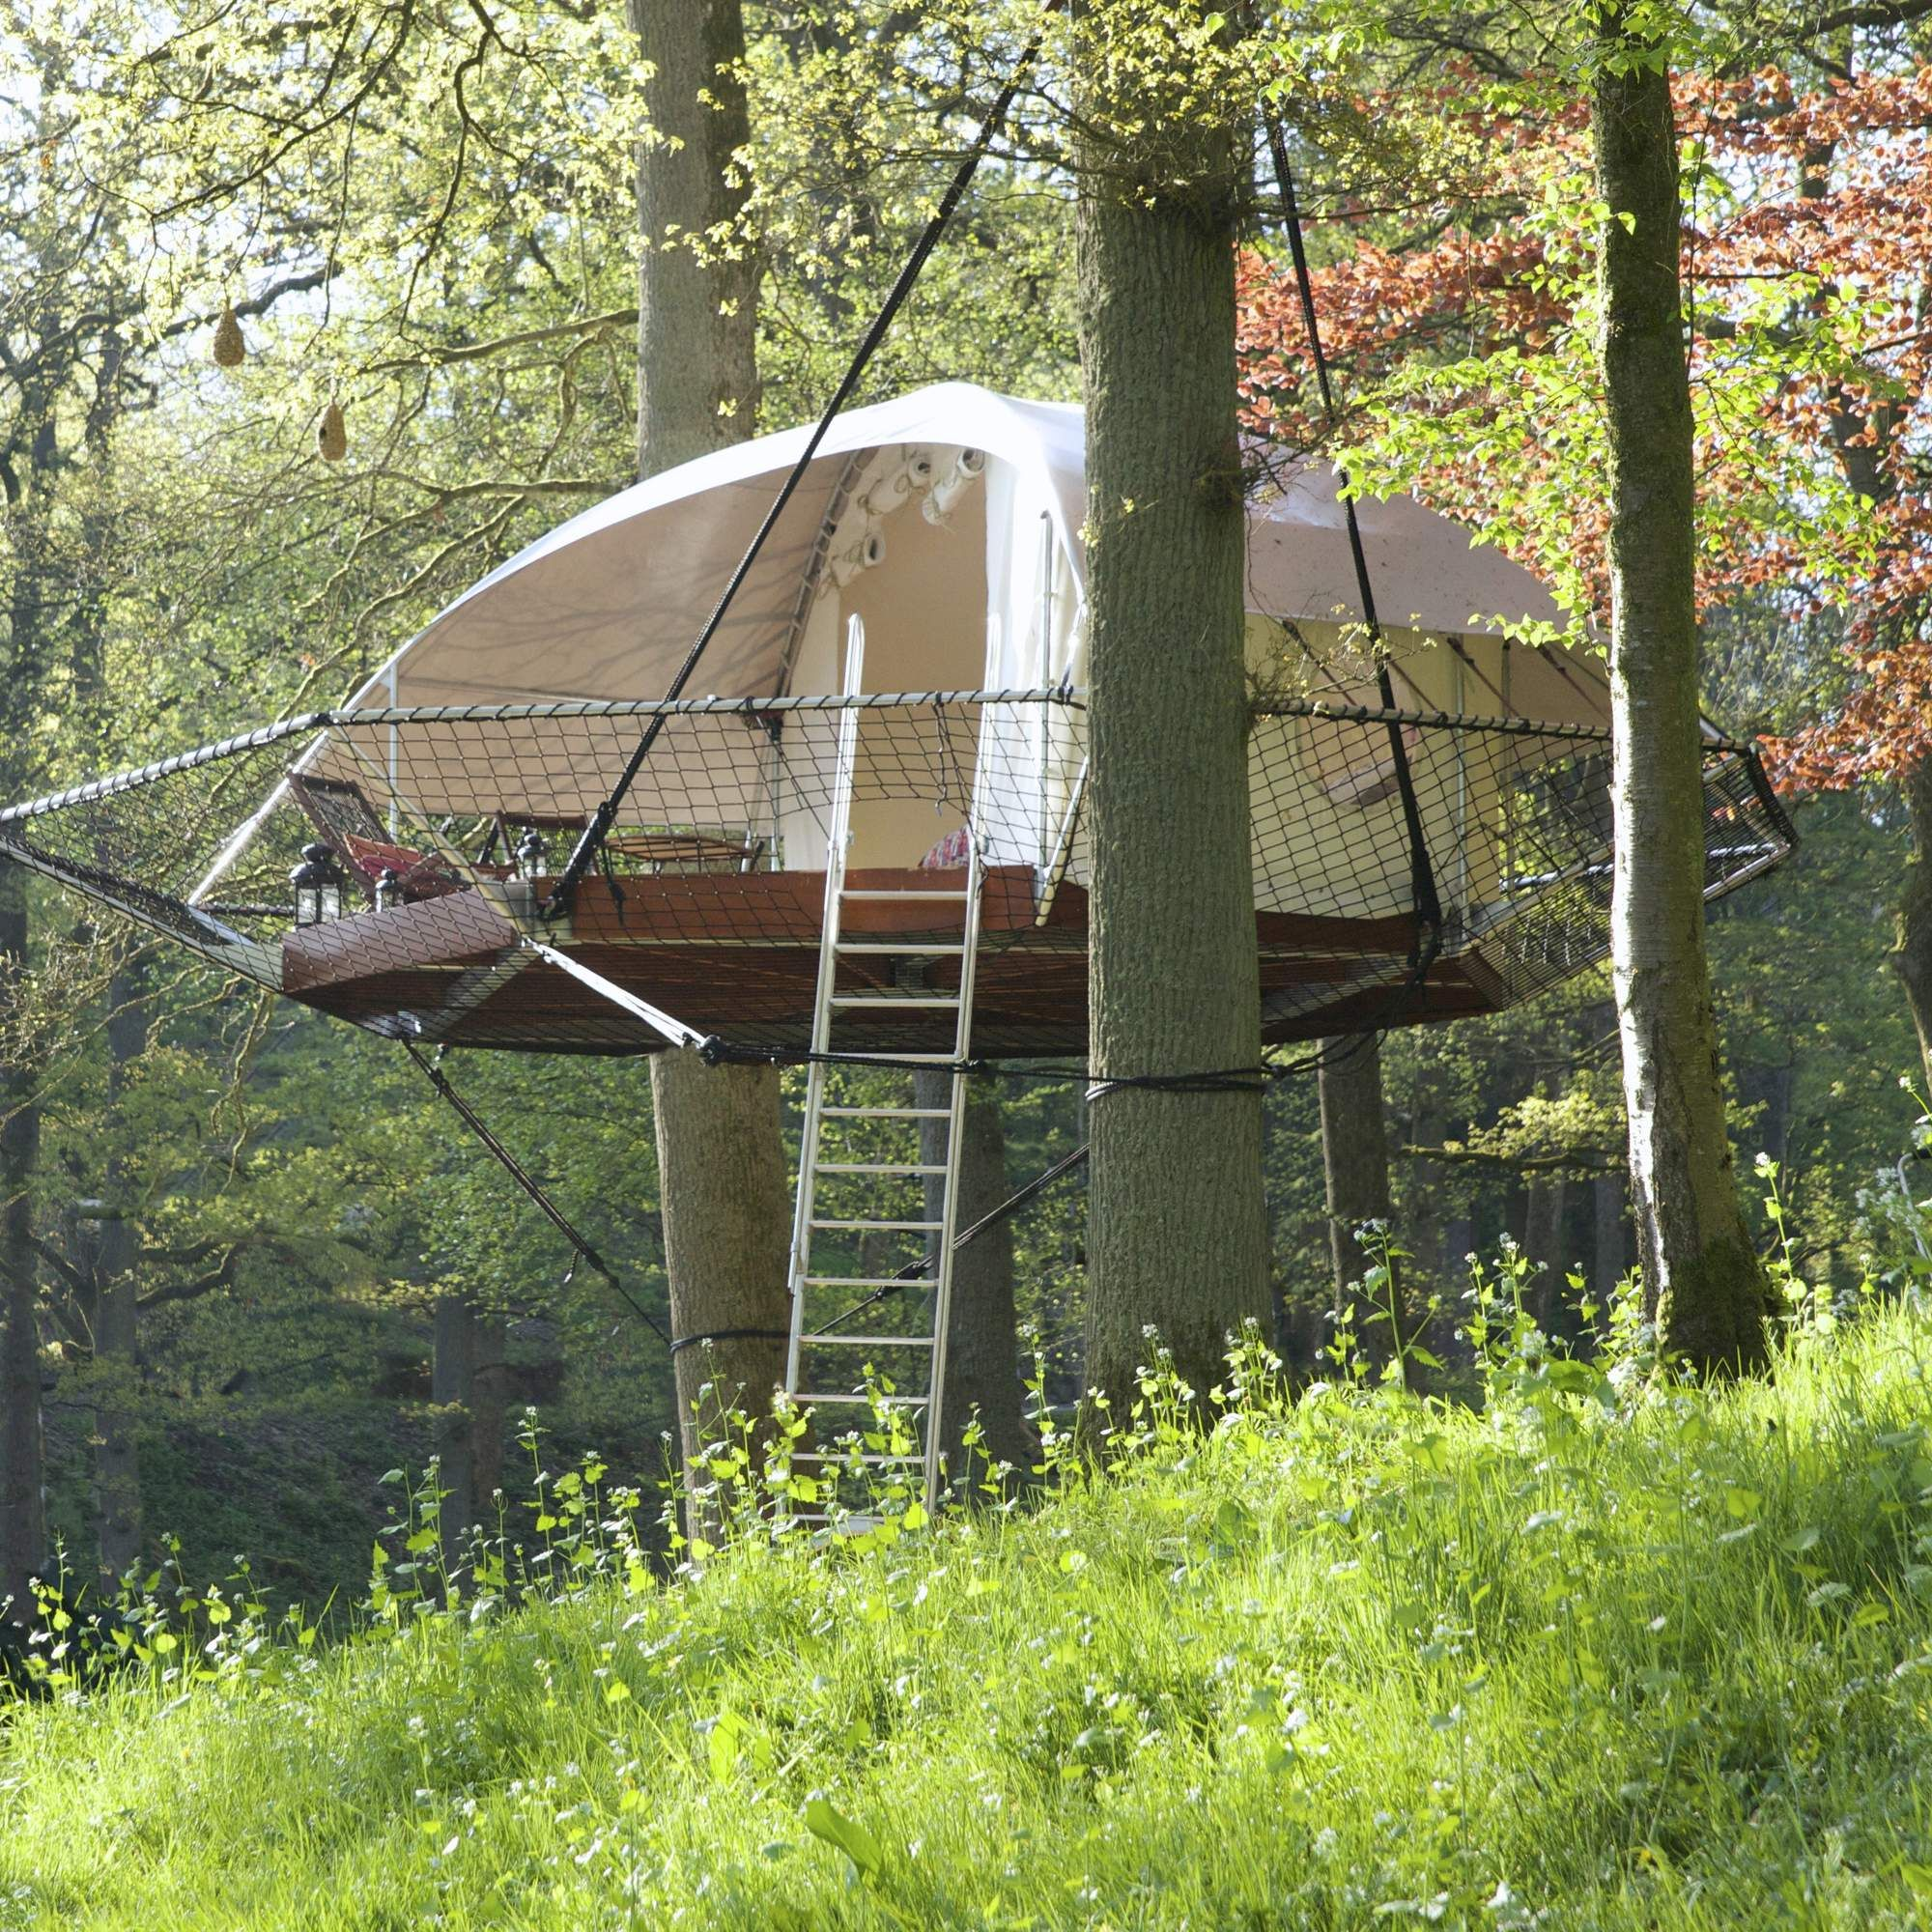 The Portable Treehouse Tent For Grown Ups  sc 1 st  Pinterest : portable treehouse tent - memphite.com